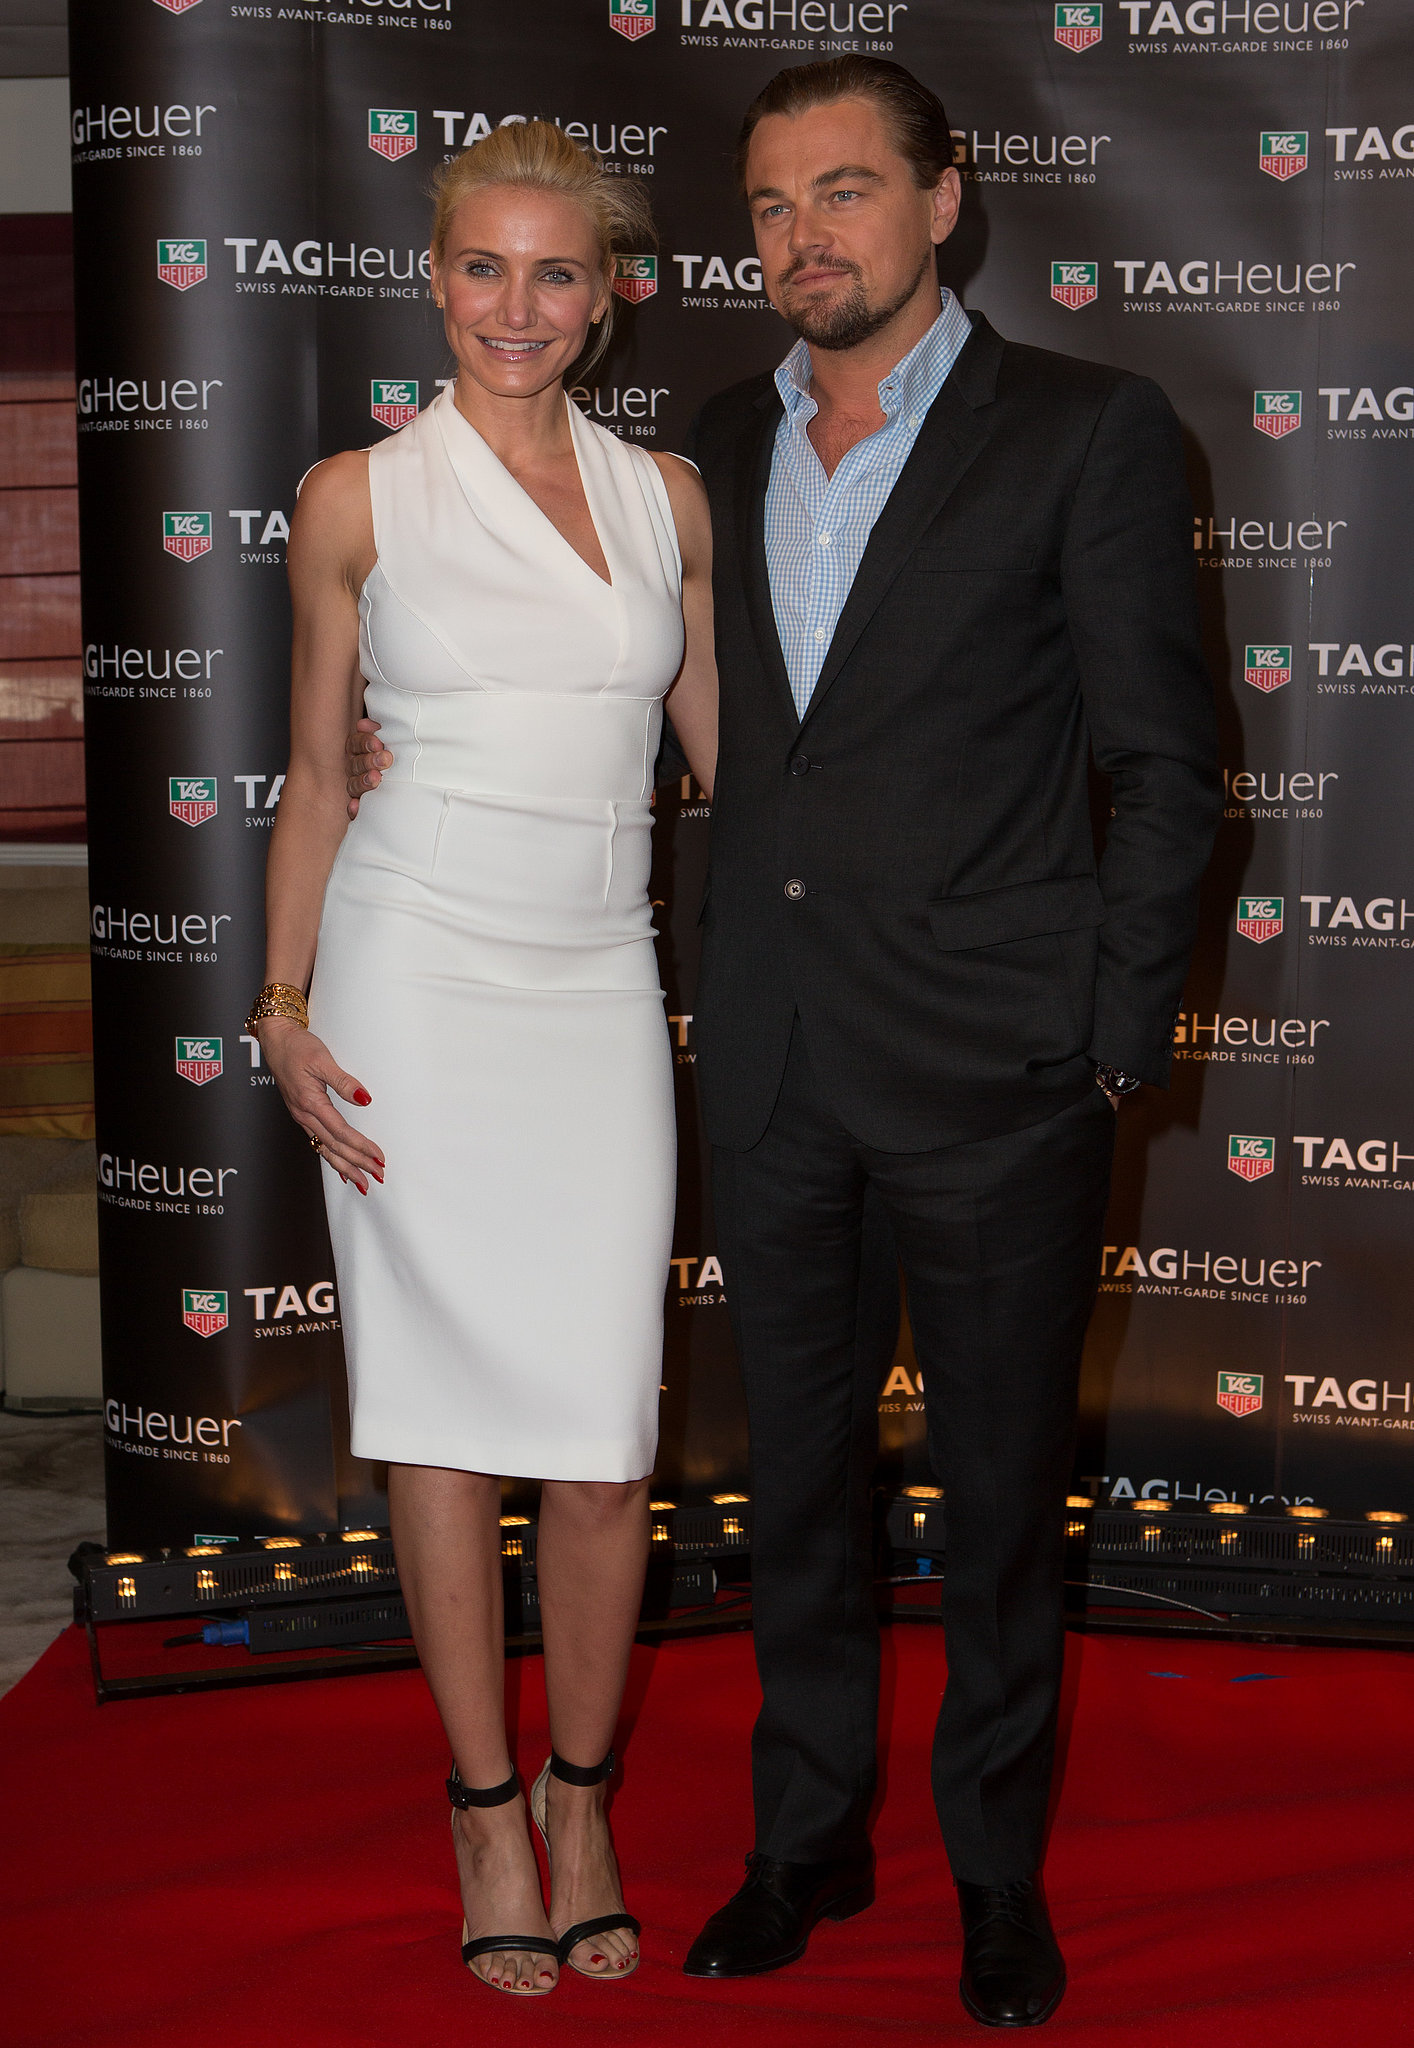 Cameron Diaz and Leonardo DiCaprio met up for the Tag Heuer Grand Prix party in Monte Carlo on Sunday.